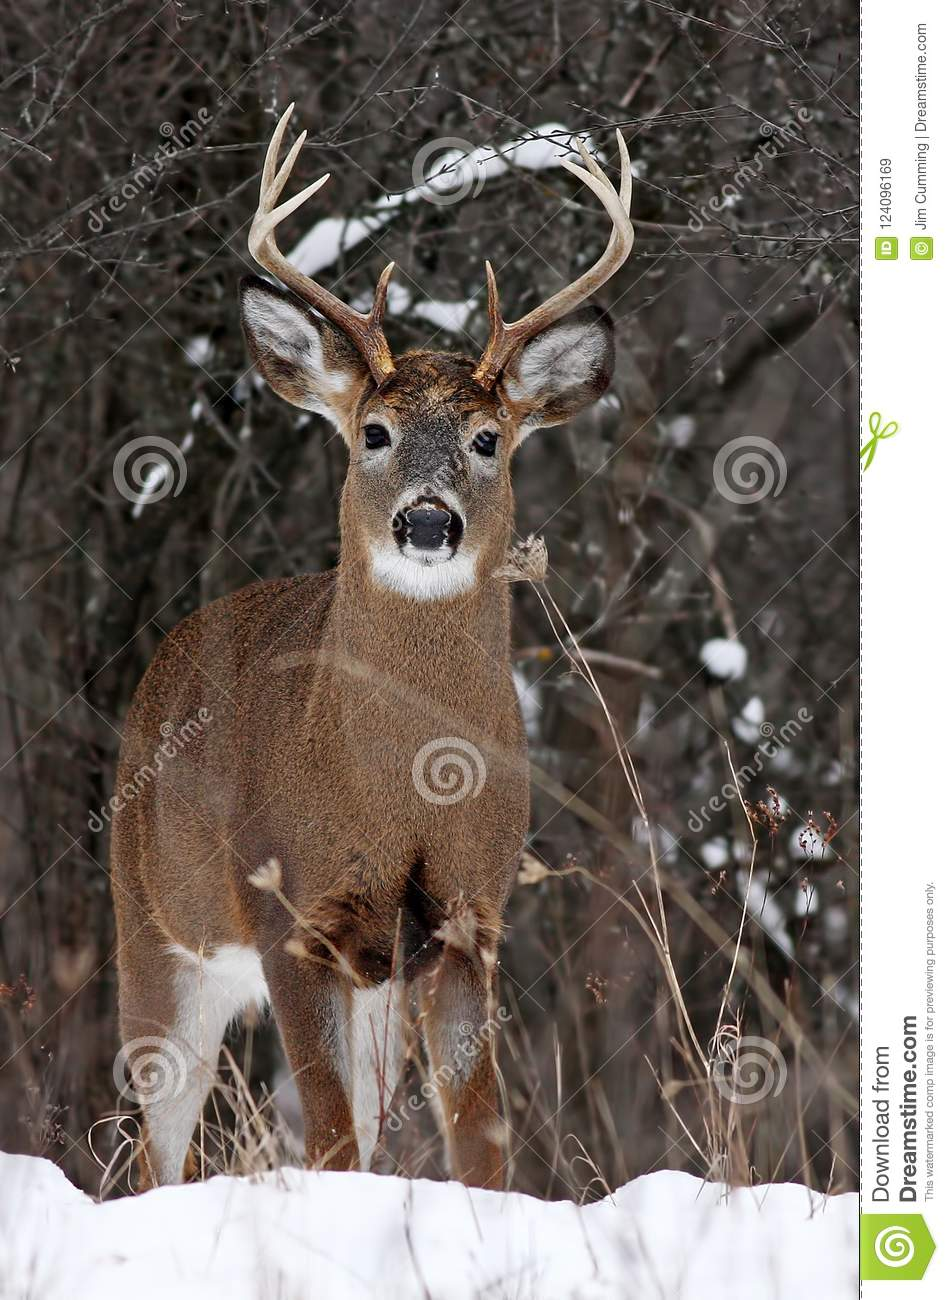 A White-tailed deer buck in the winter snow in Canada